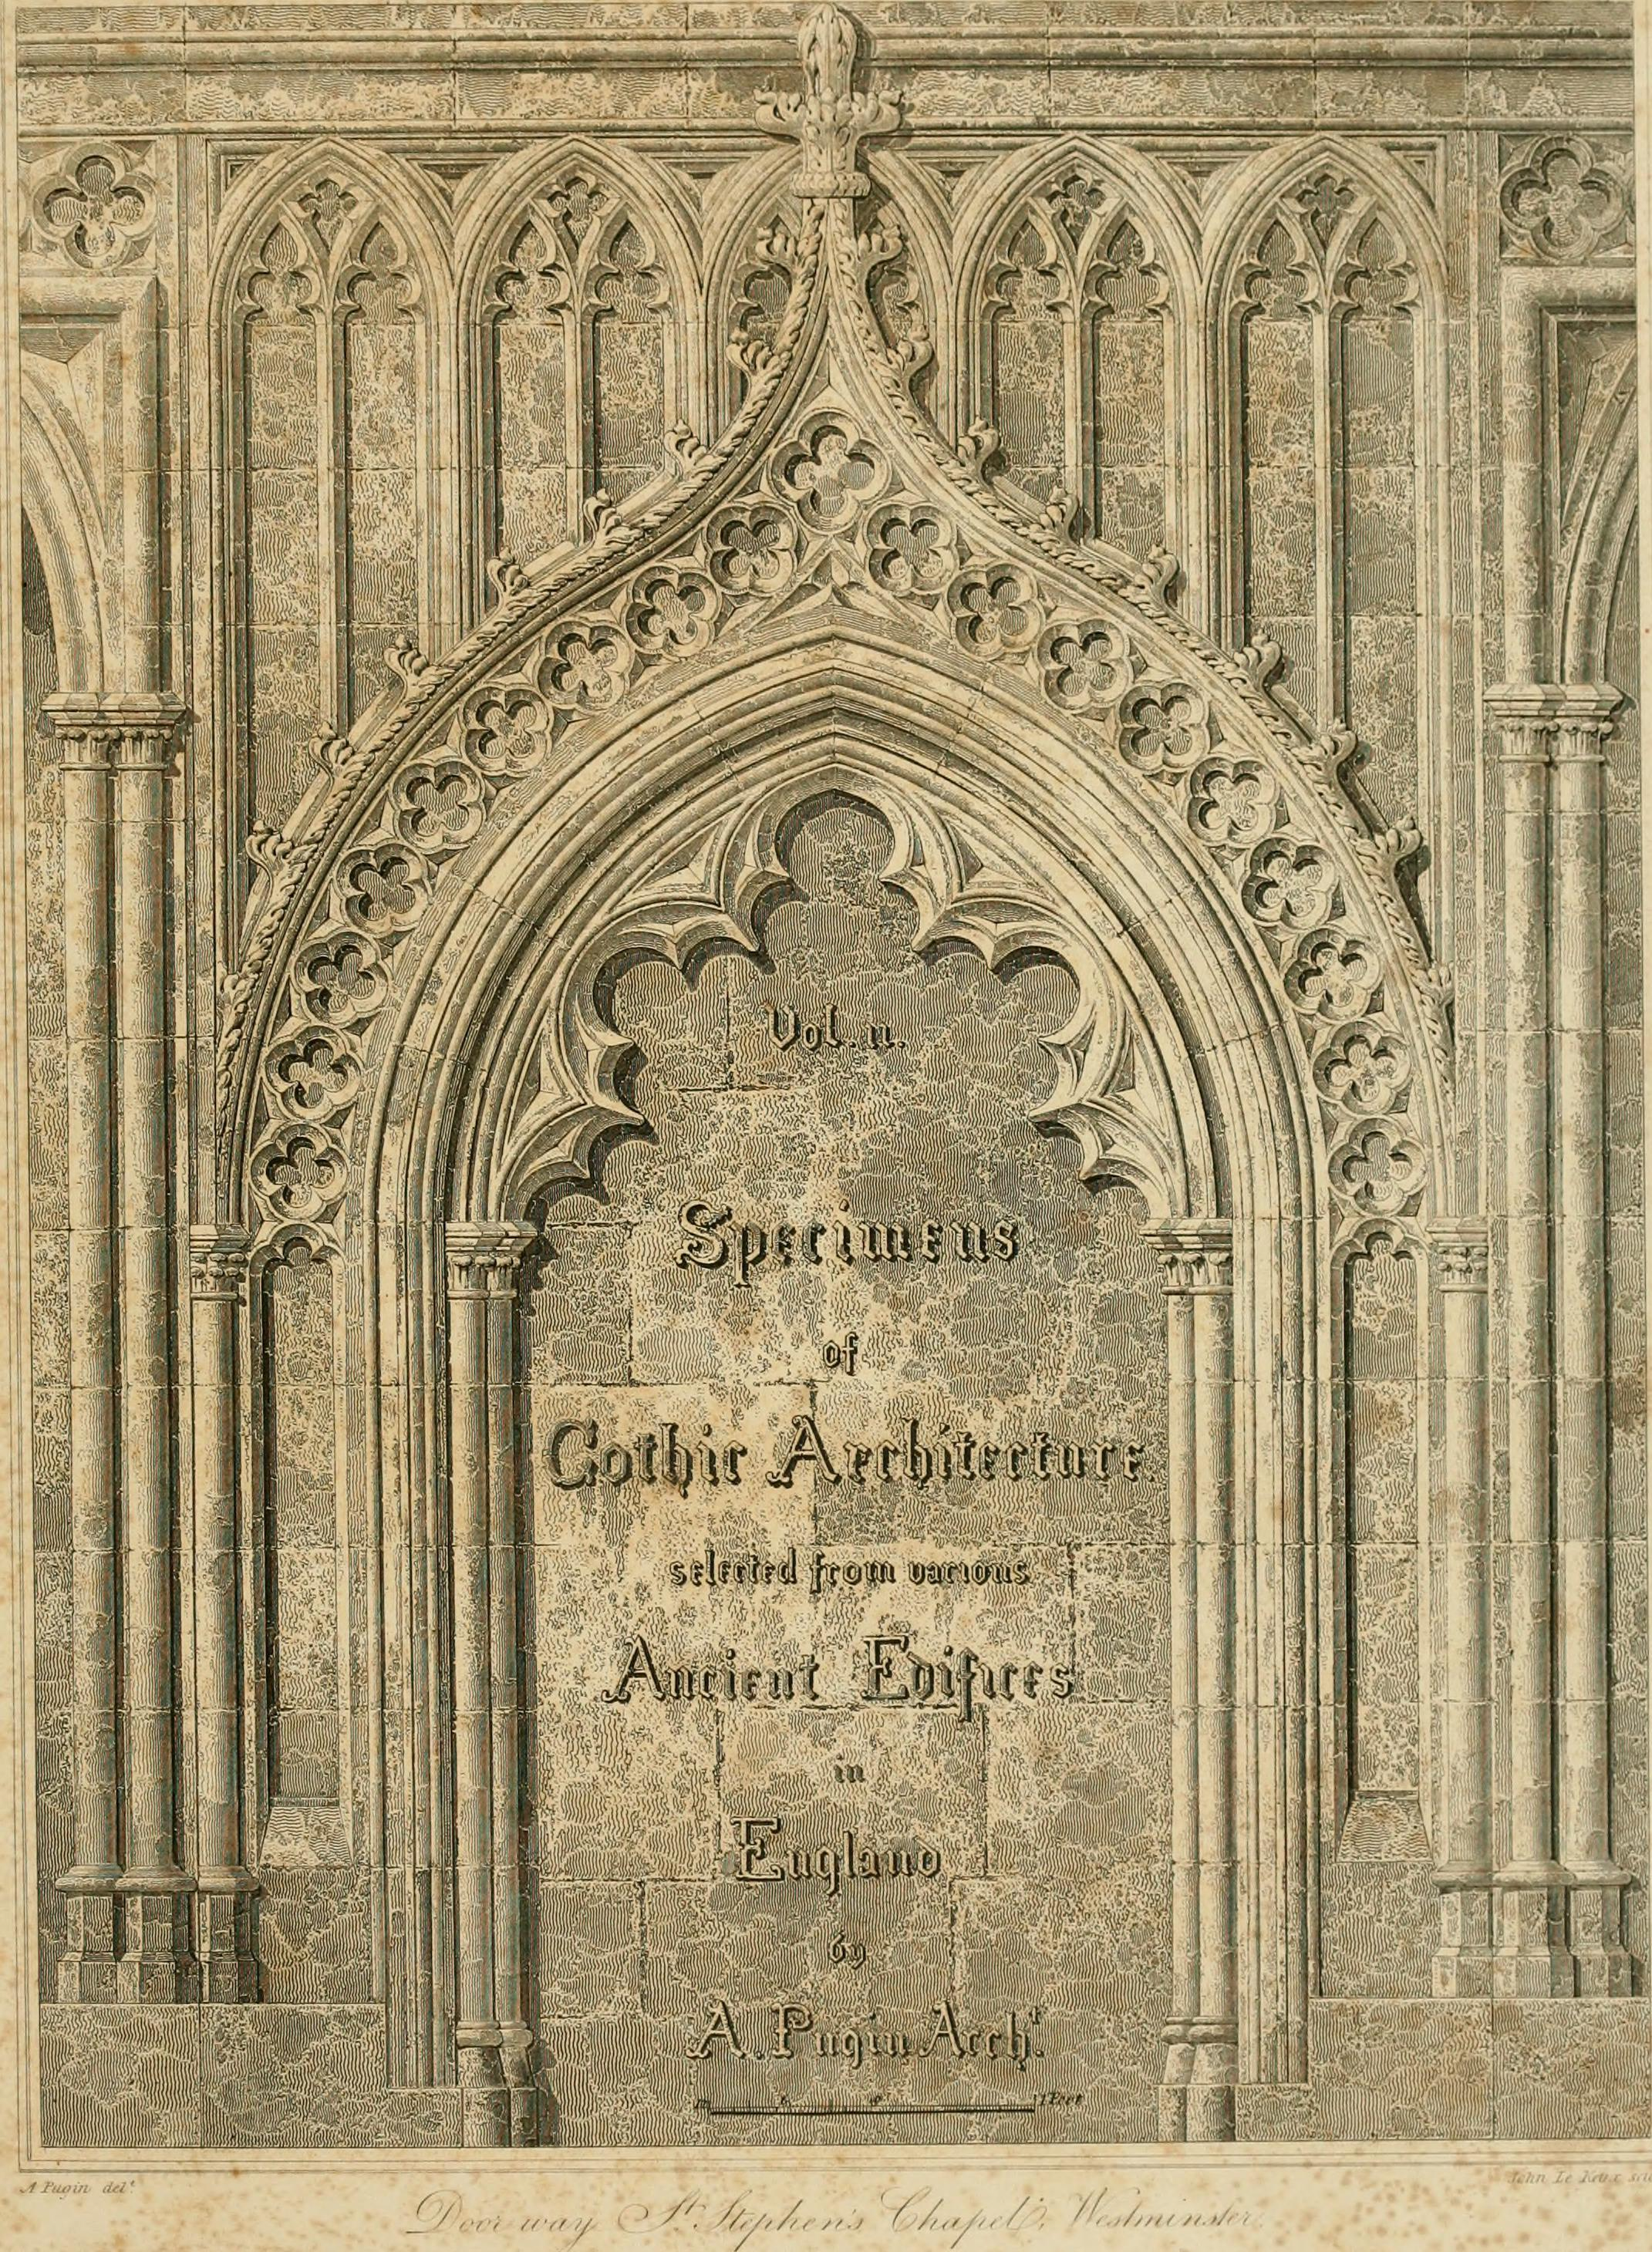 FileSpecimens Of Gothic Architecture Selected From Various Ancient Edifices In England Consisting